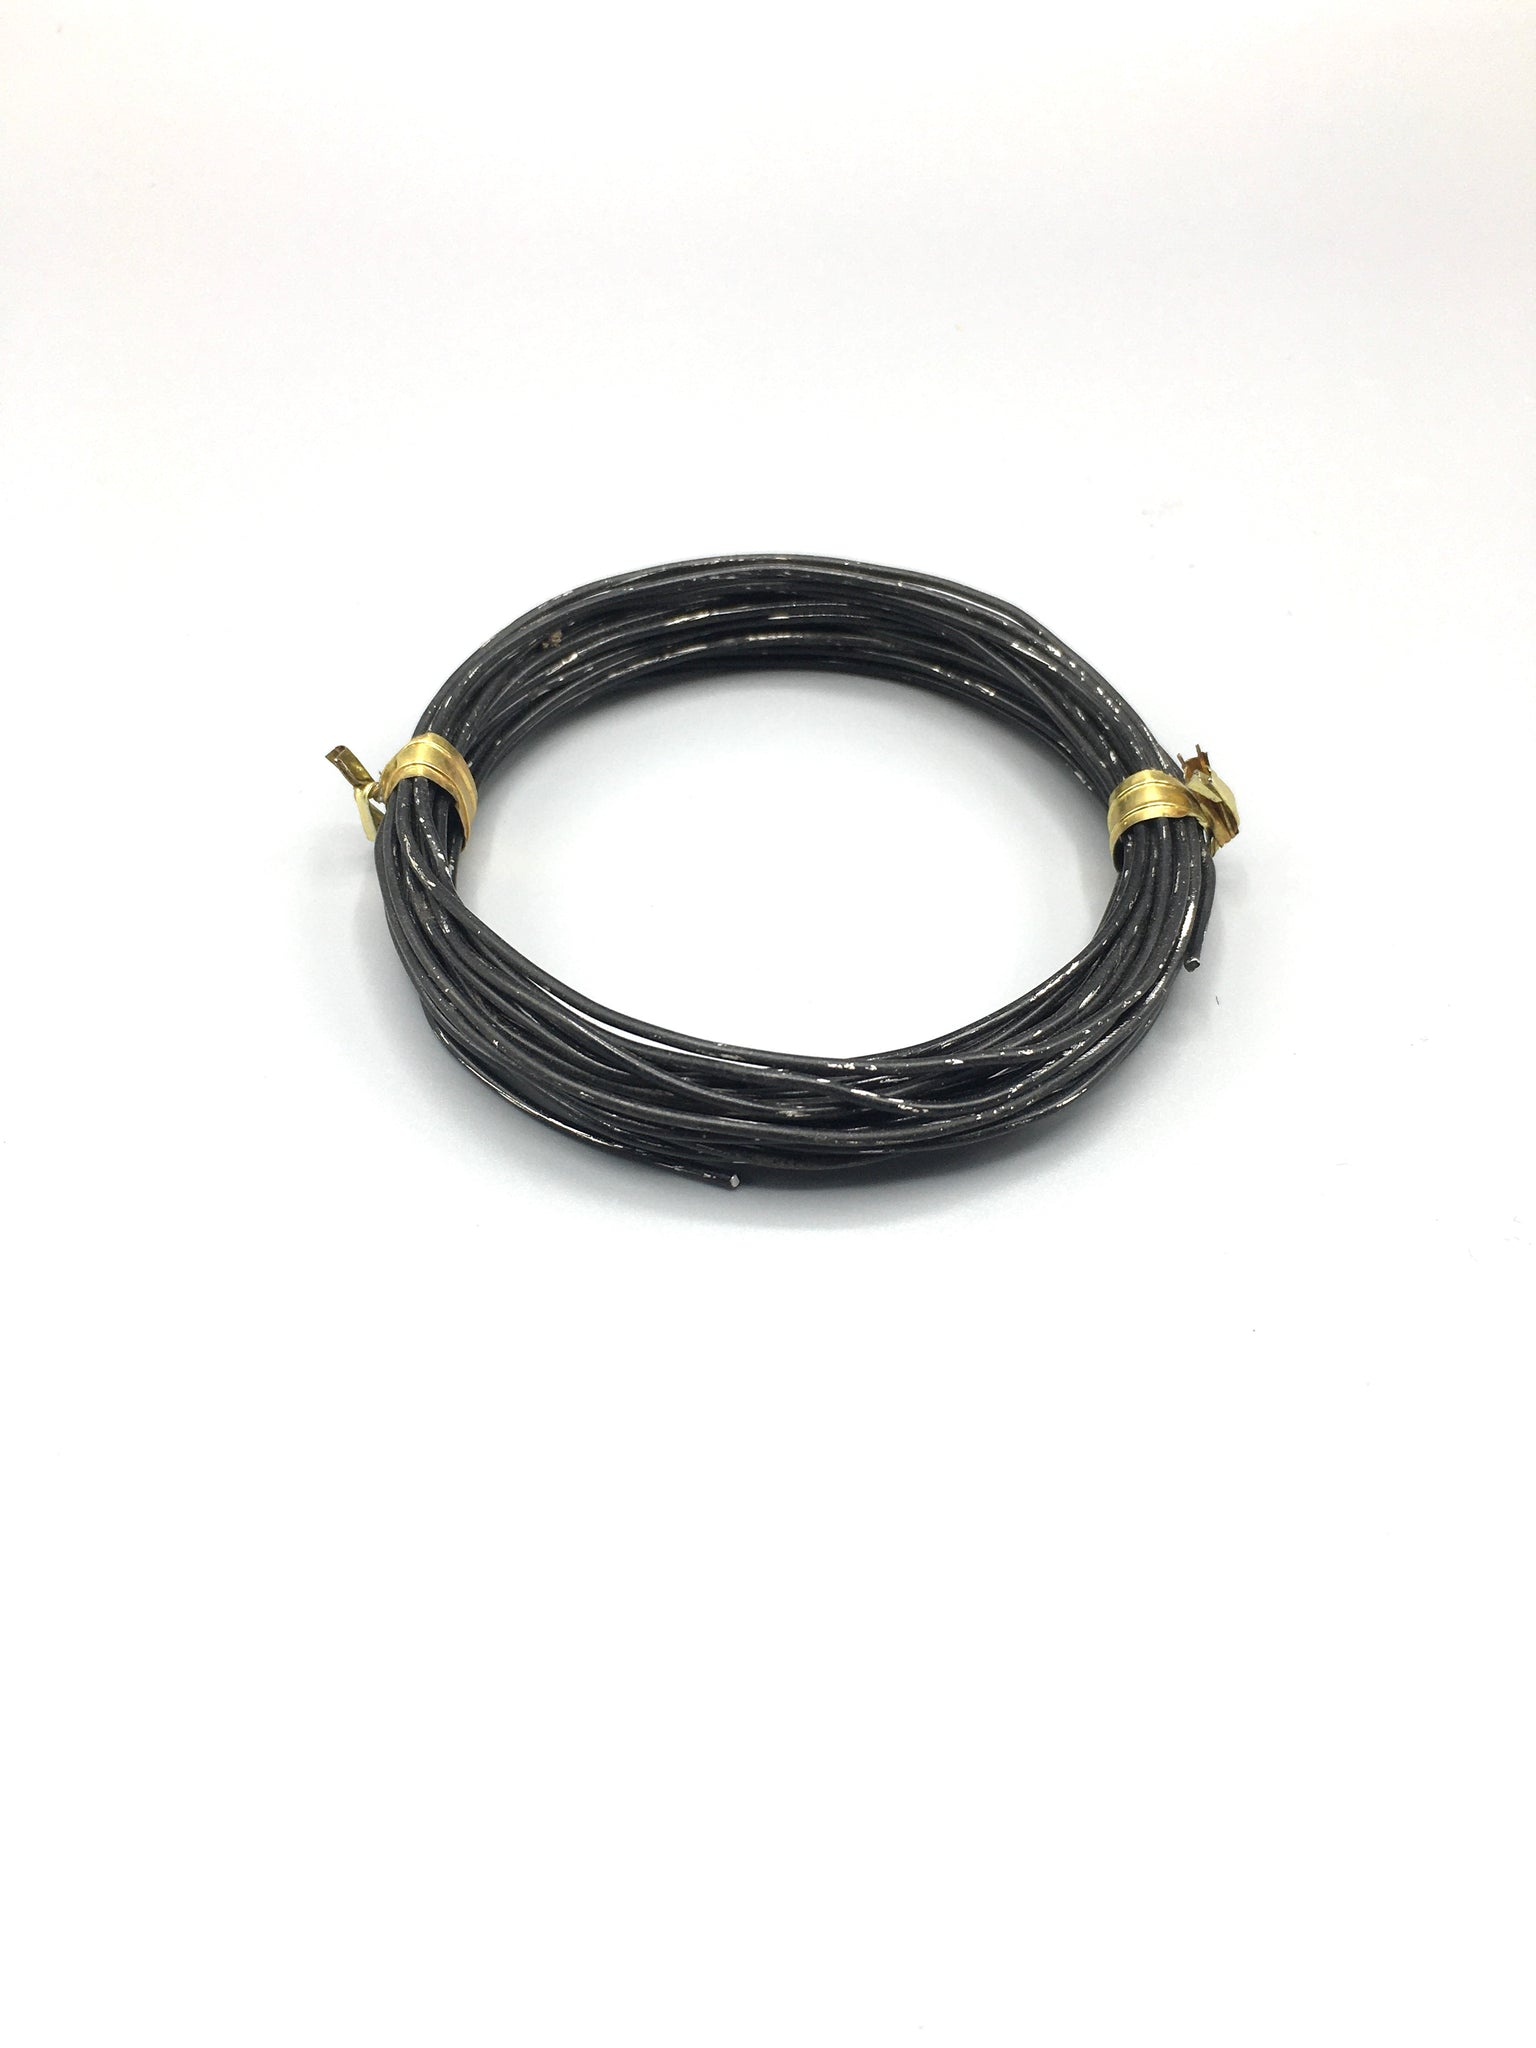 Training wire, Diameter 1.0mm